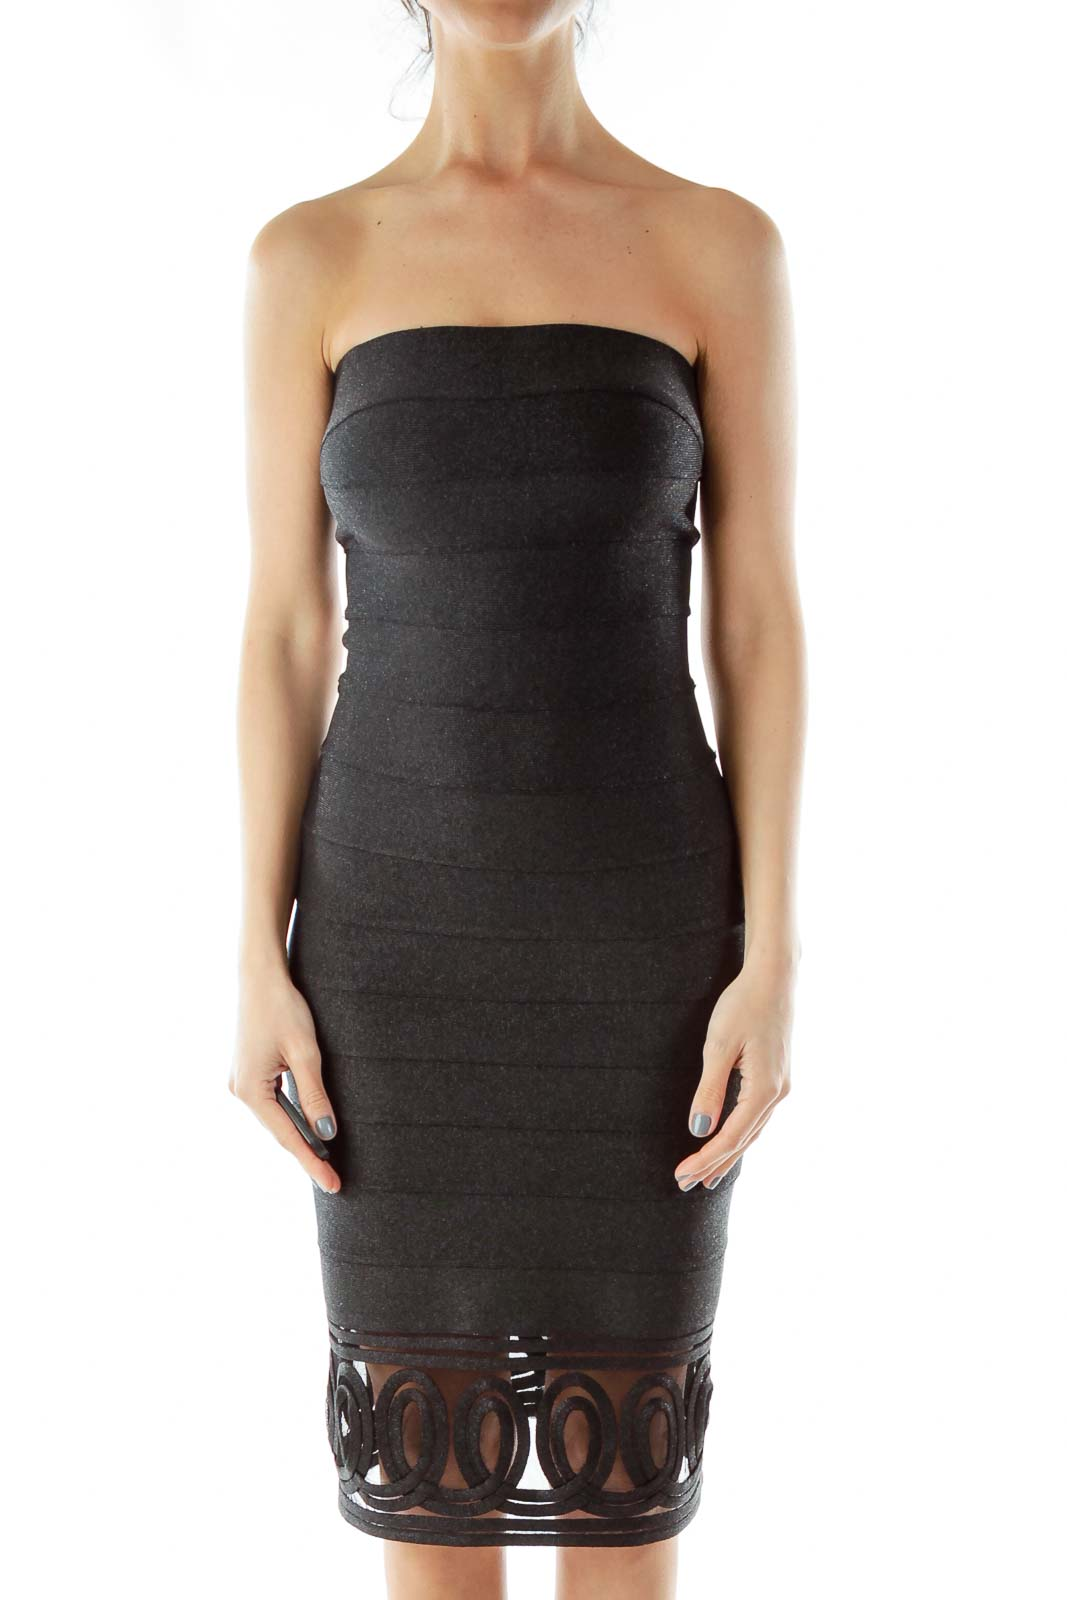 Black Metallic Bodycon Dress